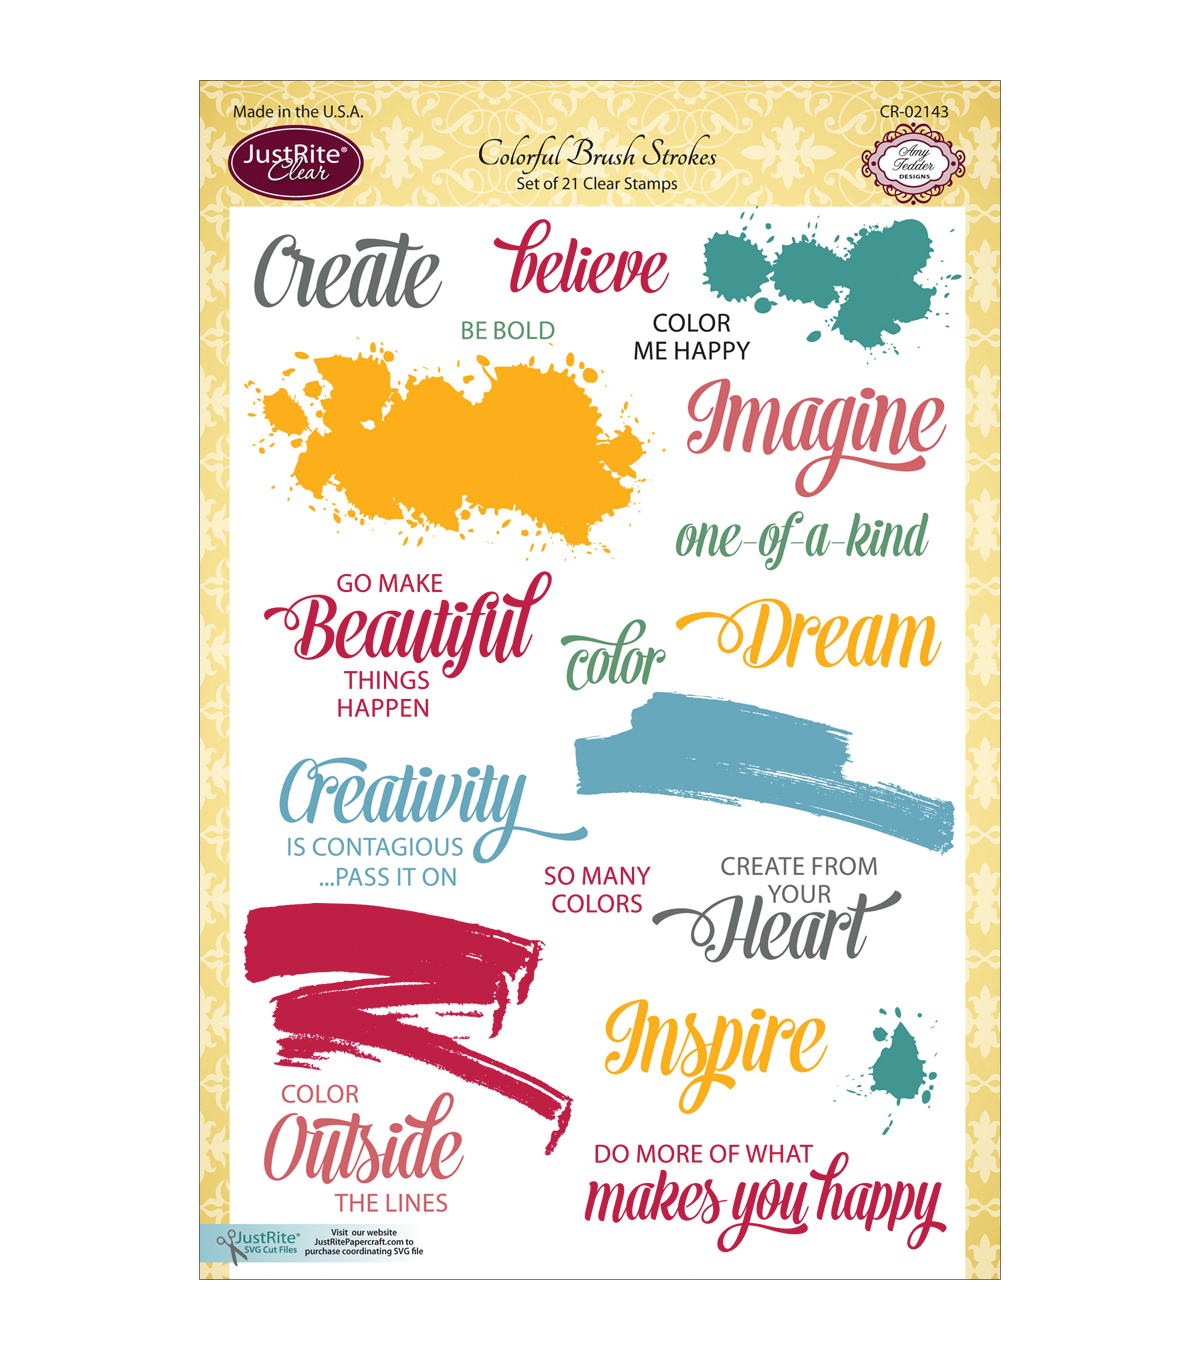 JustRite Papercraft Colorful Brush Strokes Clear Stamp Set